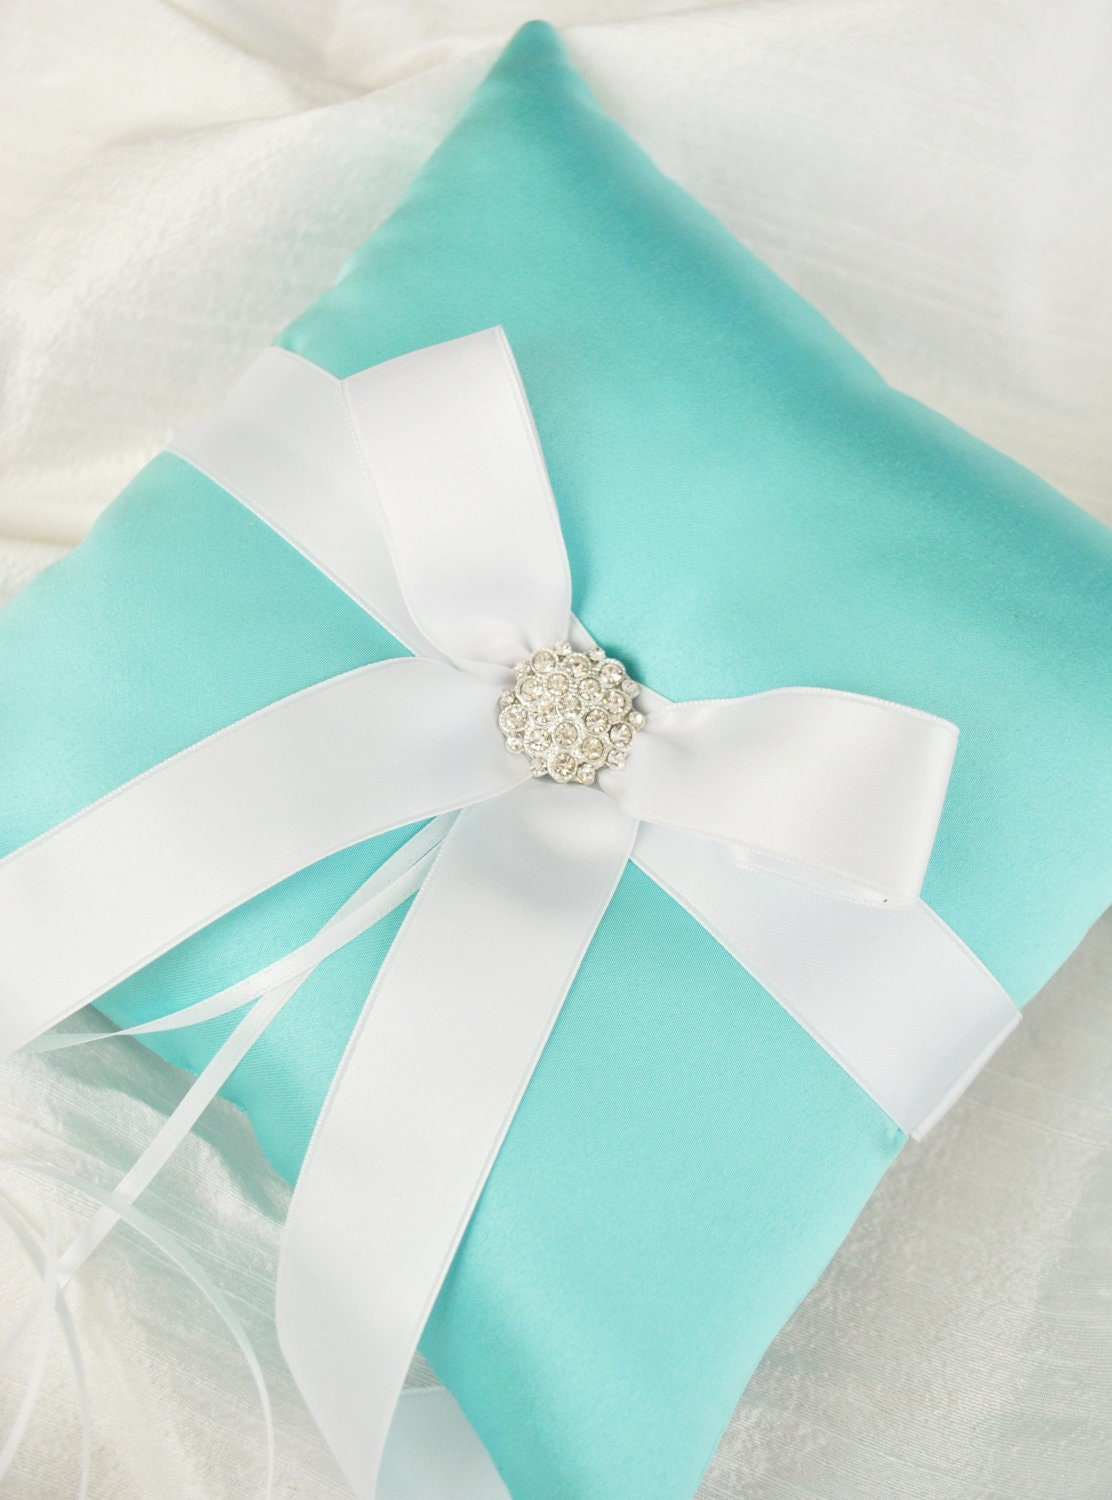 The Most Beautiful Wedding Rings Tiffany Blue Wedding Ring Pillow